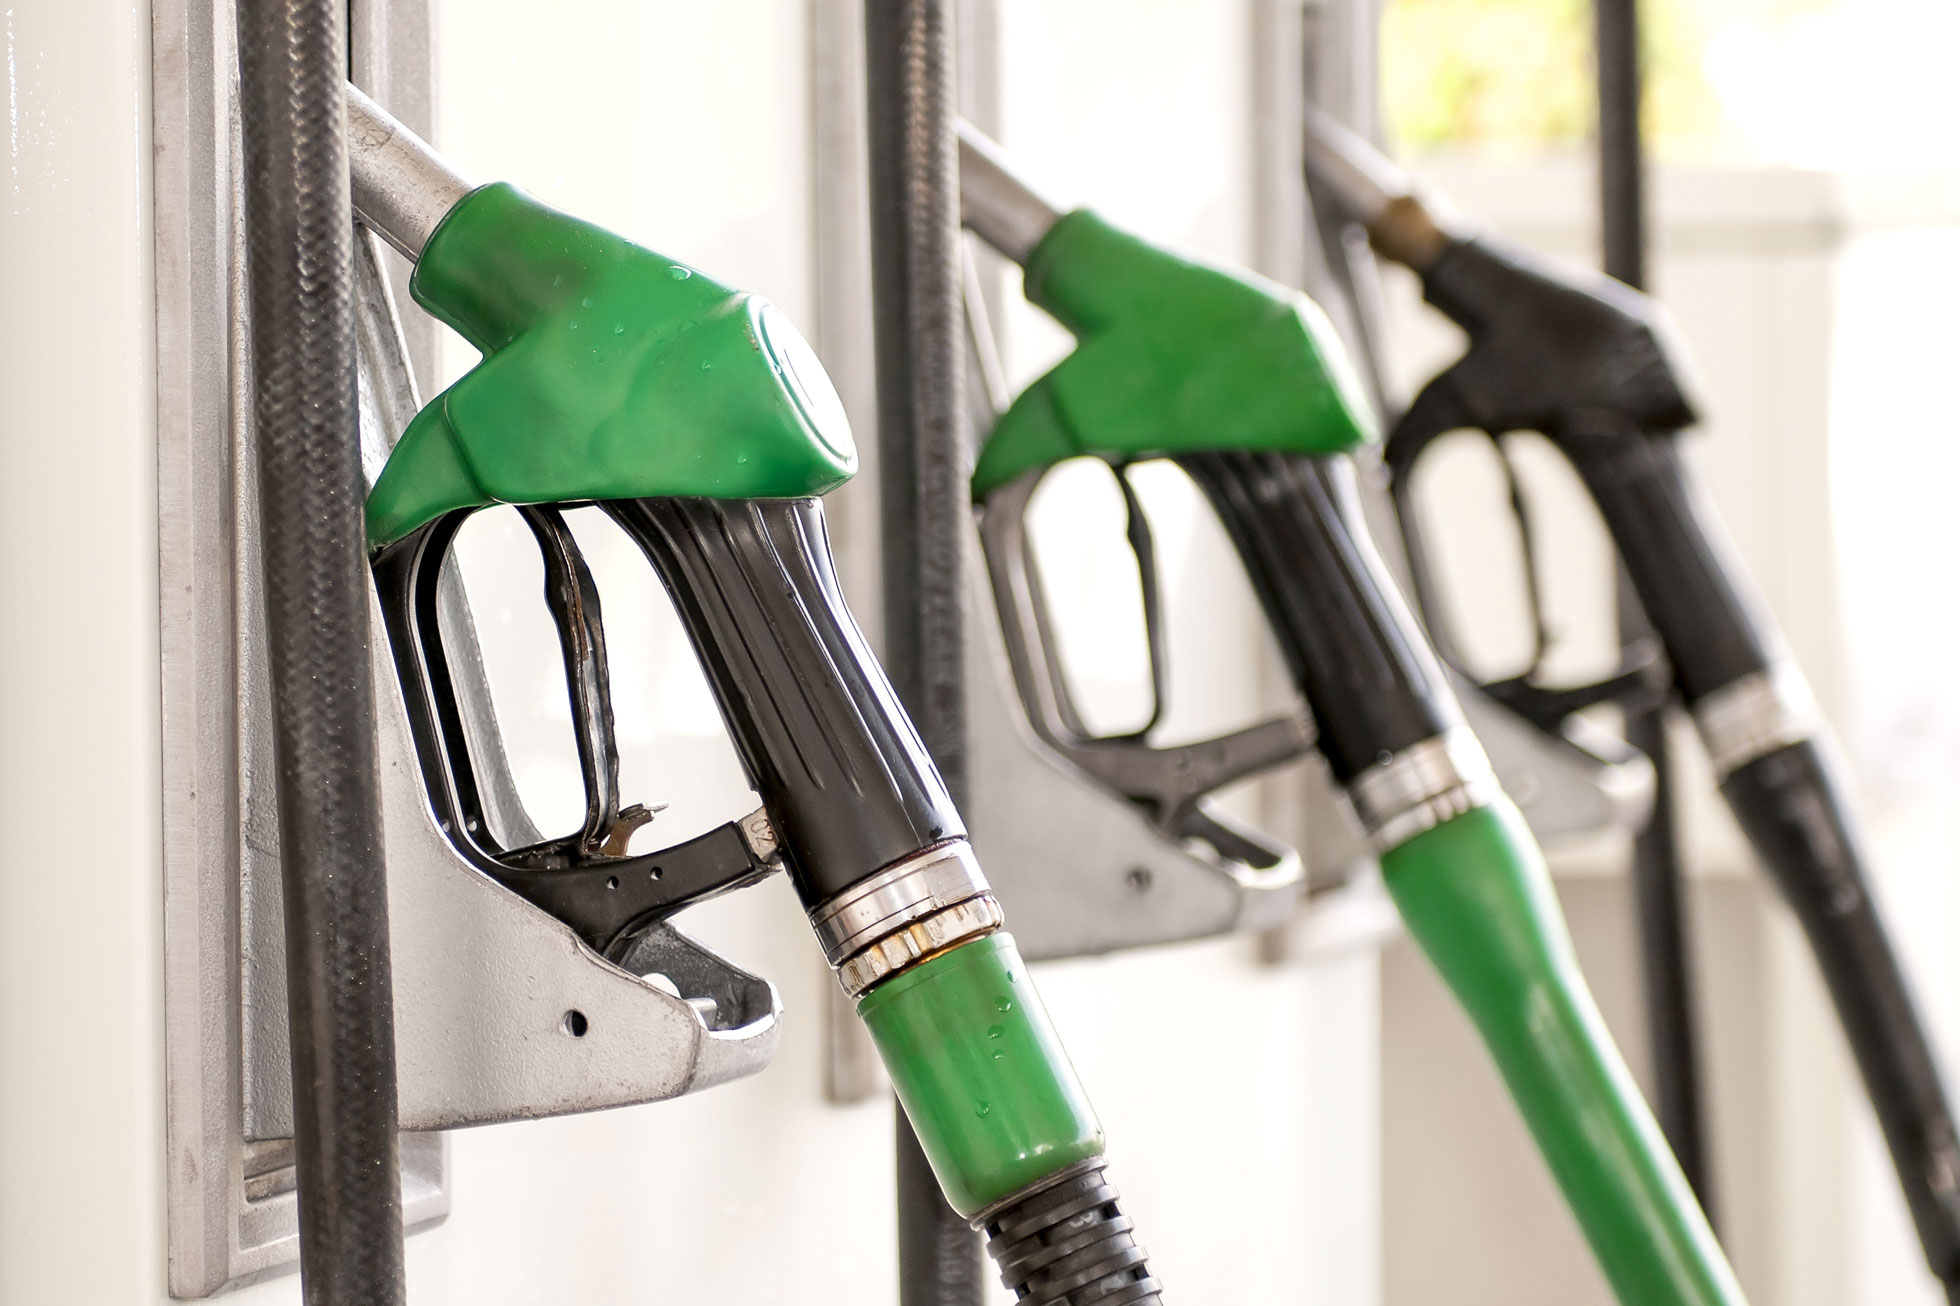 Budget 2015: FairFuelUK urges Chancellor to cut fuel duty